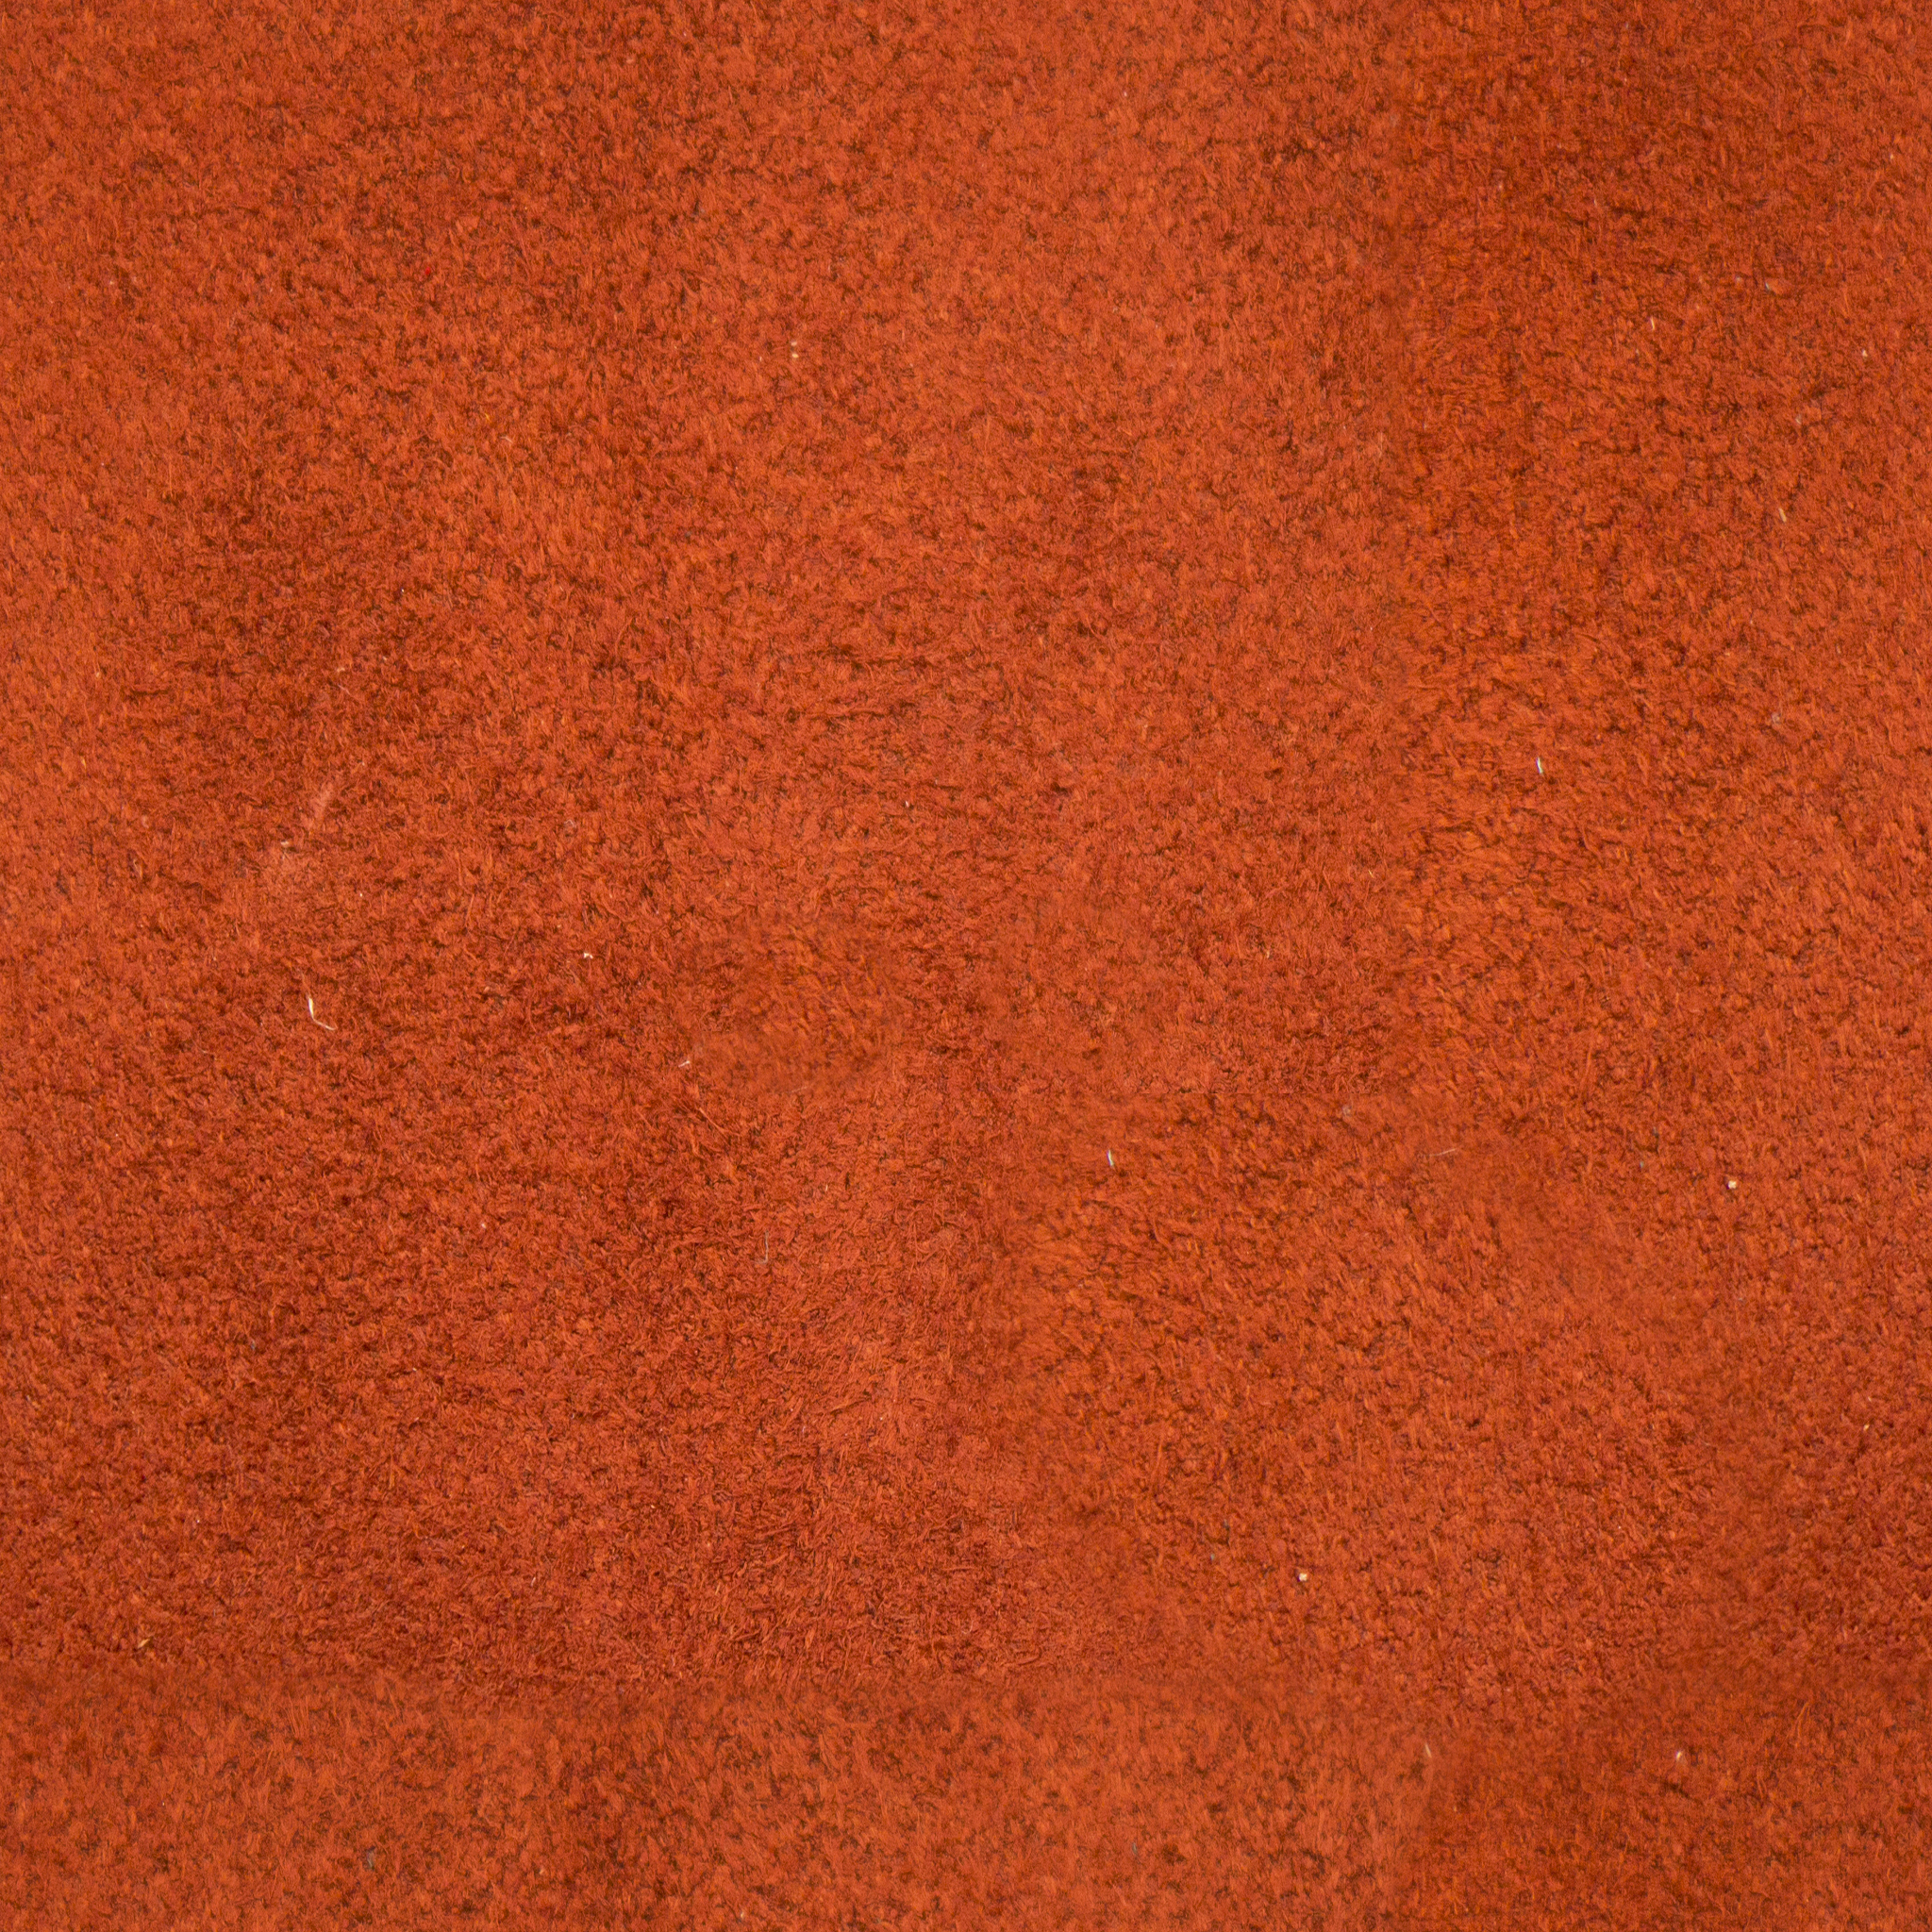 Orange Nubuck Leather.jpg